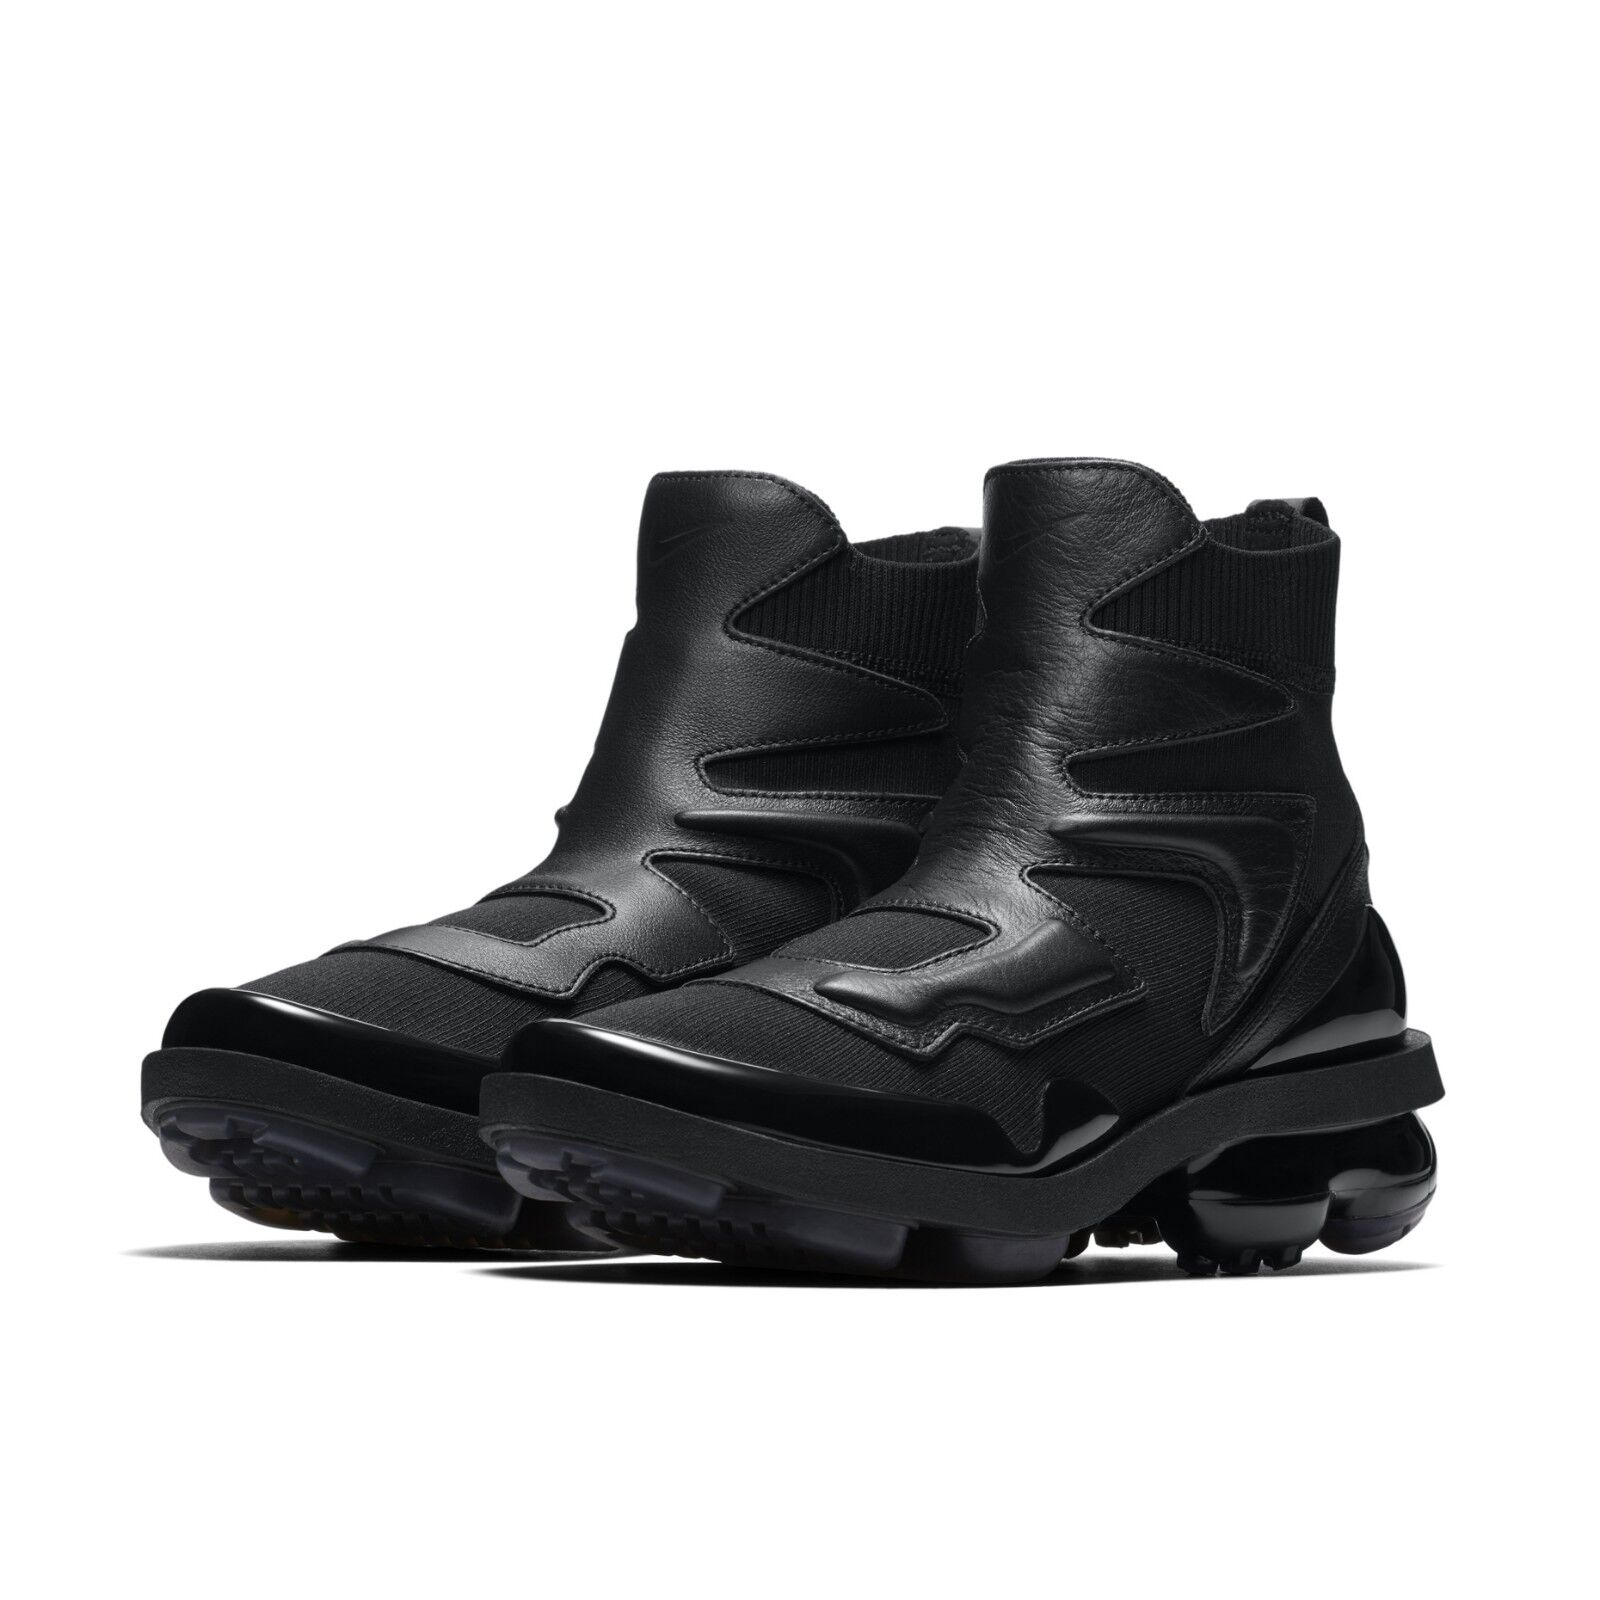 the best attitude 64a18 89fbb Details about Nike Womens Wmns Vapormax Light II 2 Hi Triple Black Fashion  Shoes AO4537-001